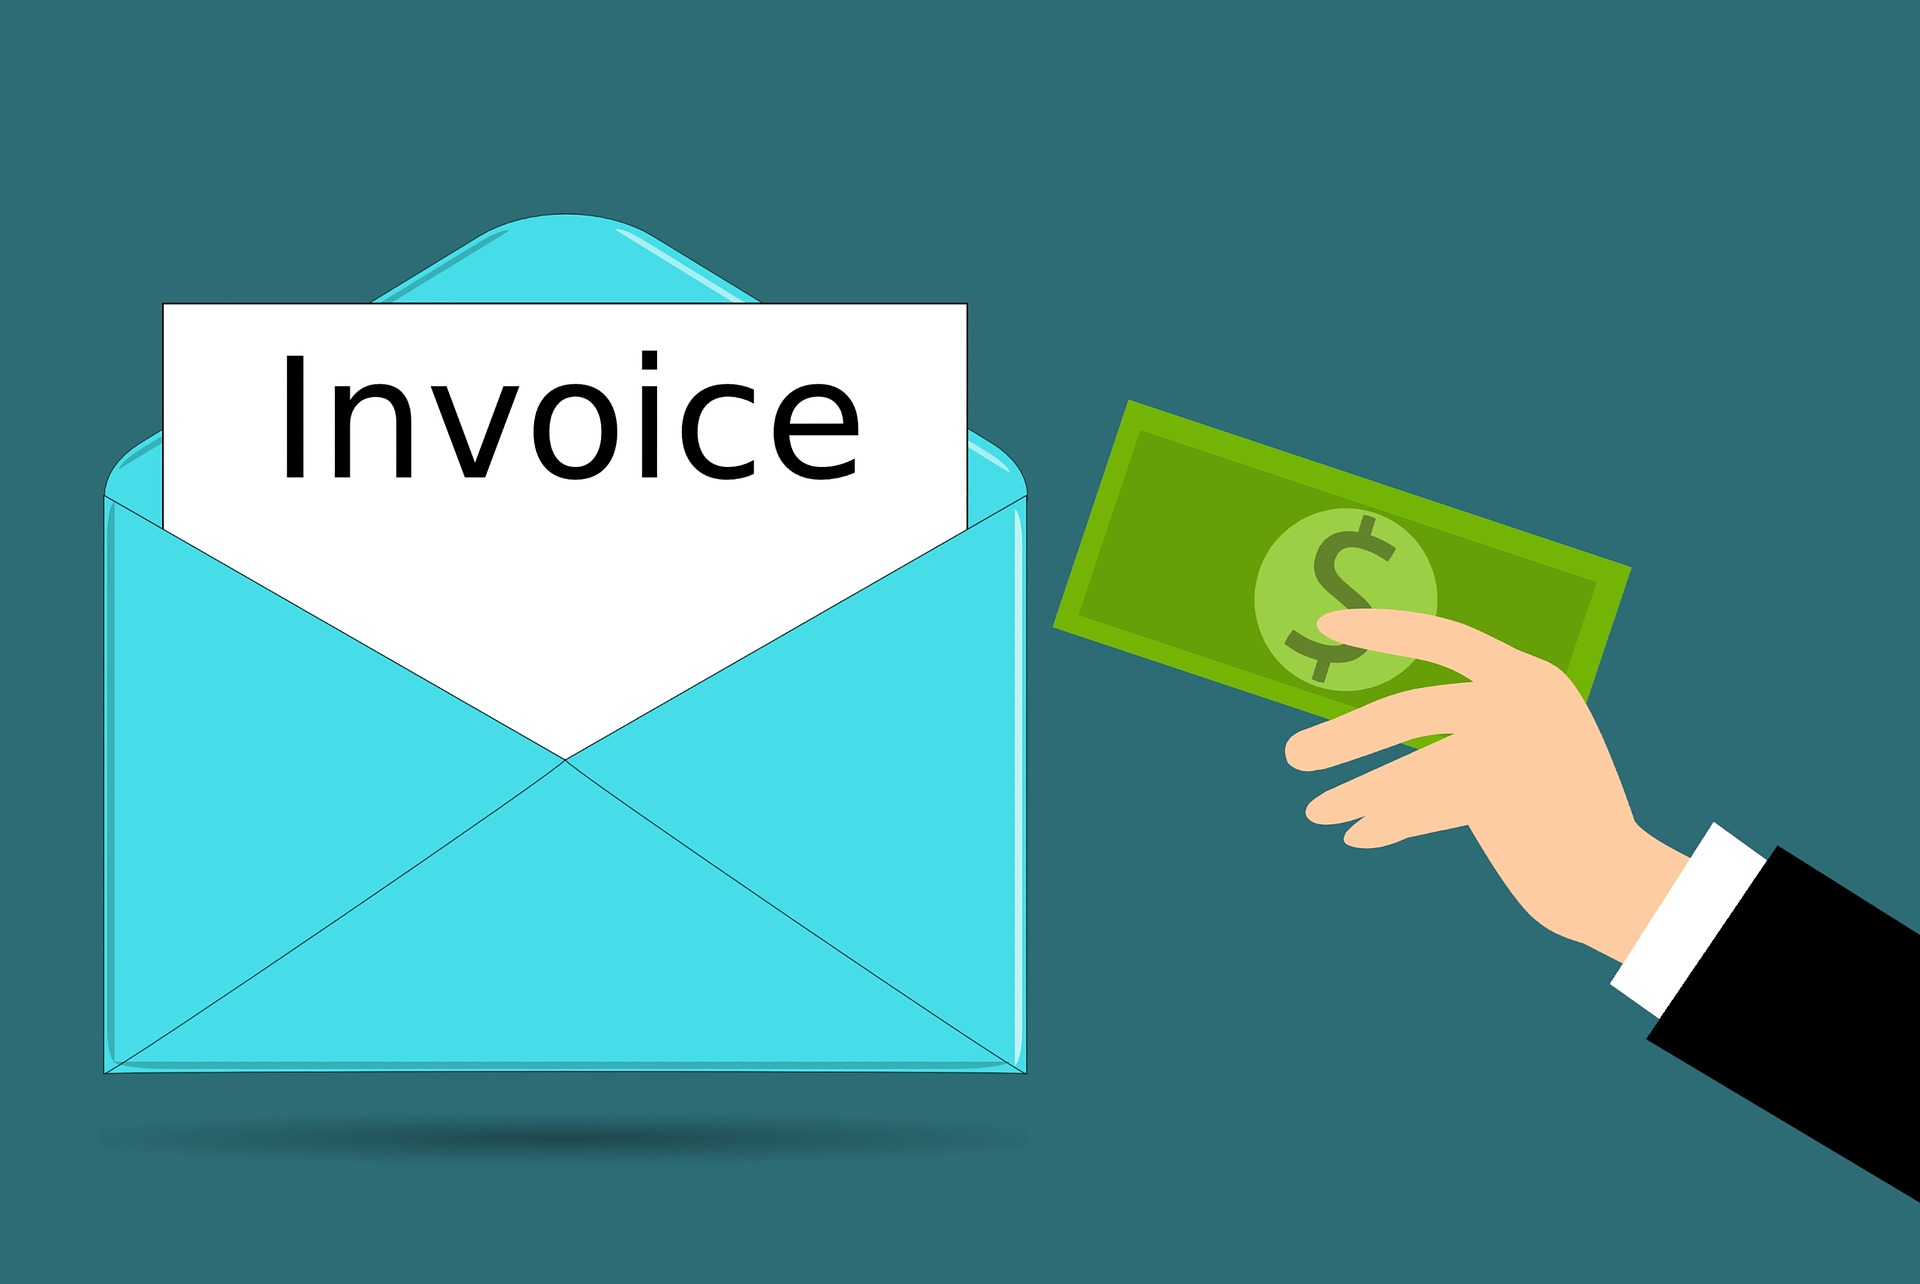 Paying the invoice